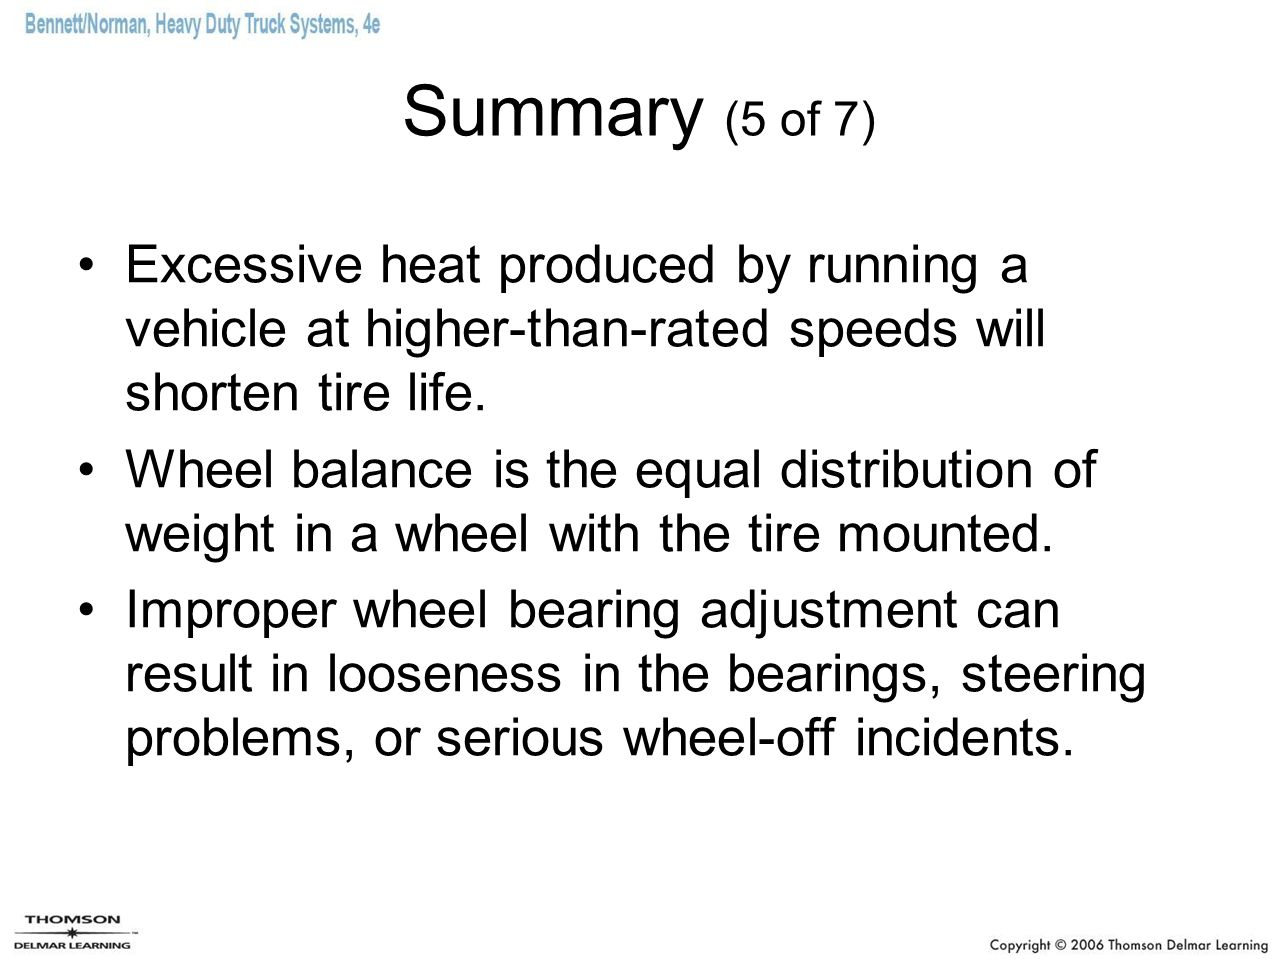 Summary (5 of 7) Excessive heat produced by running a vehicle at higher-than-rated speeds will shorten tire life.